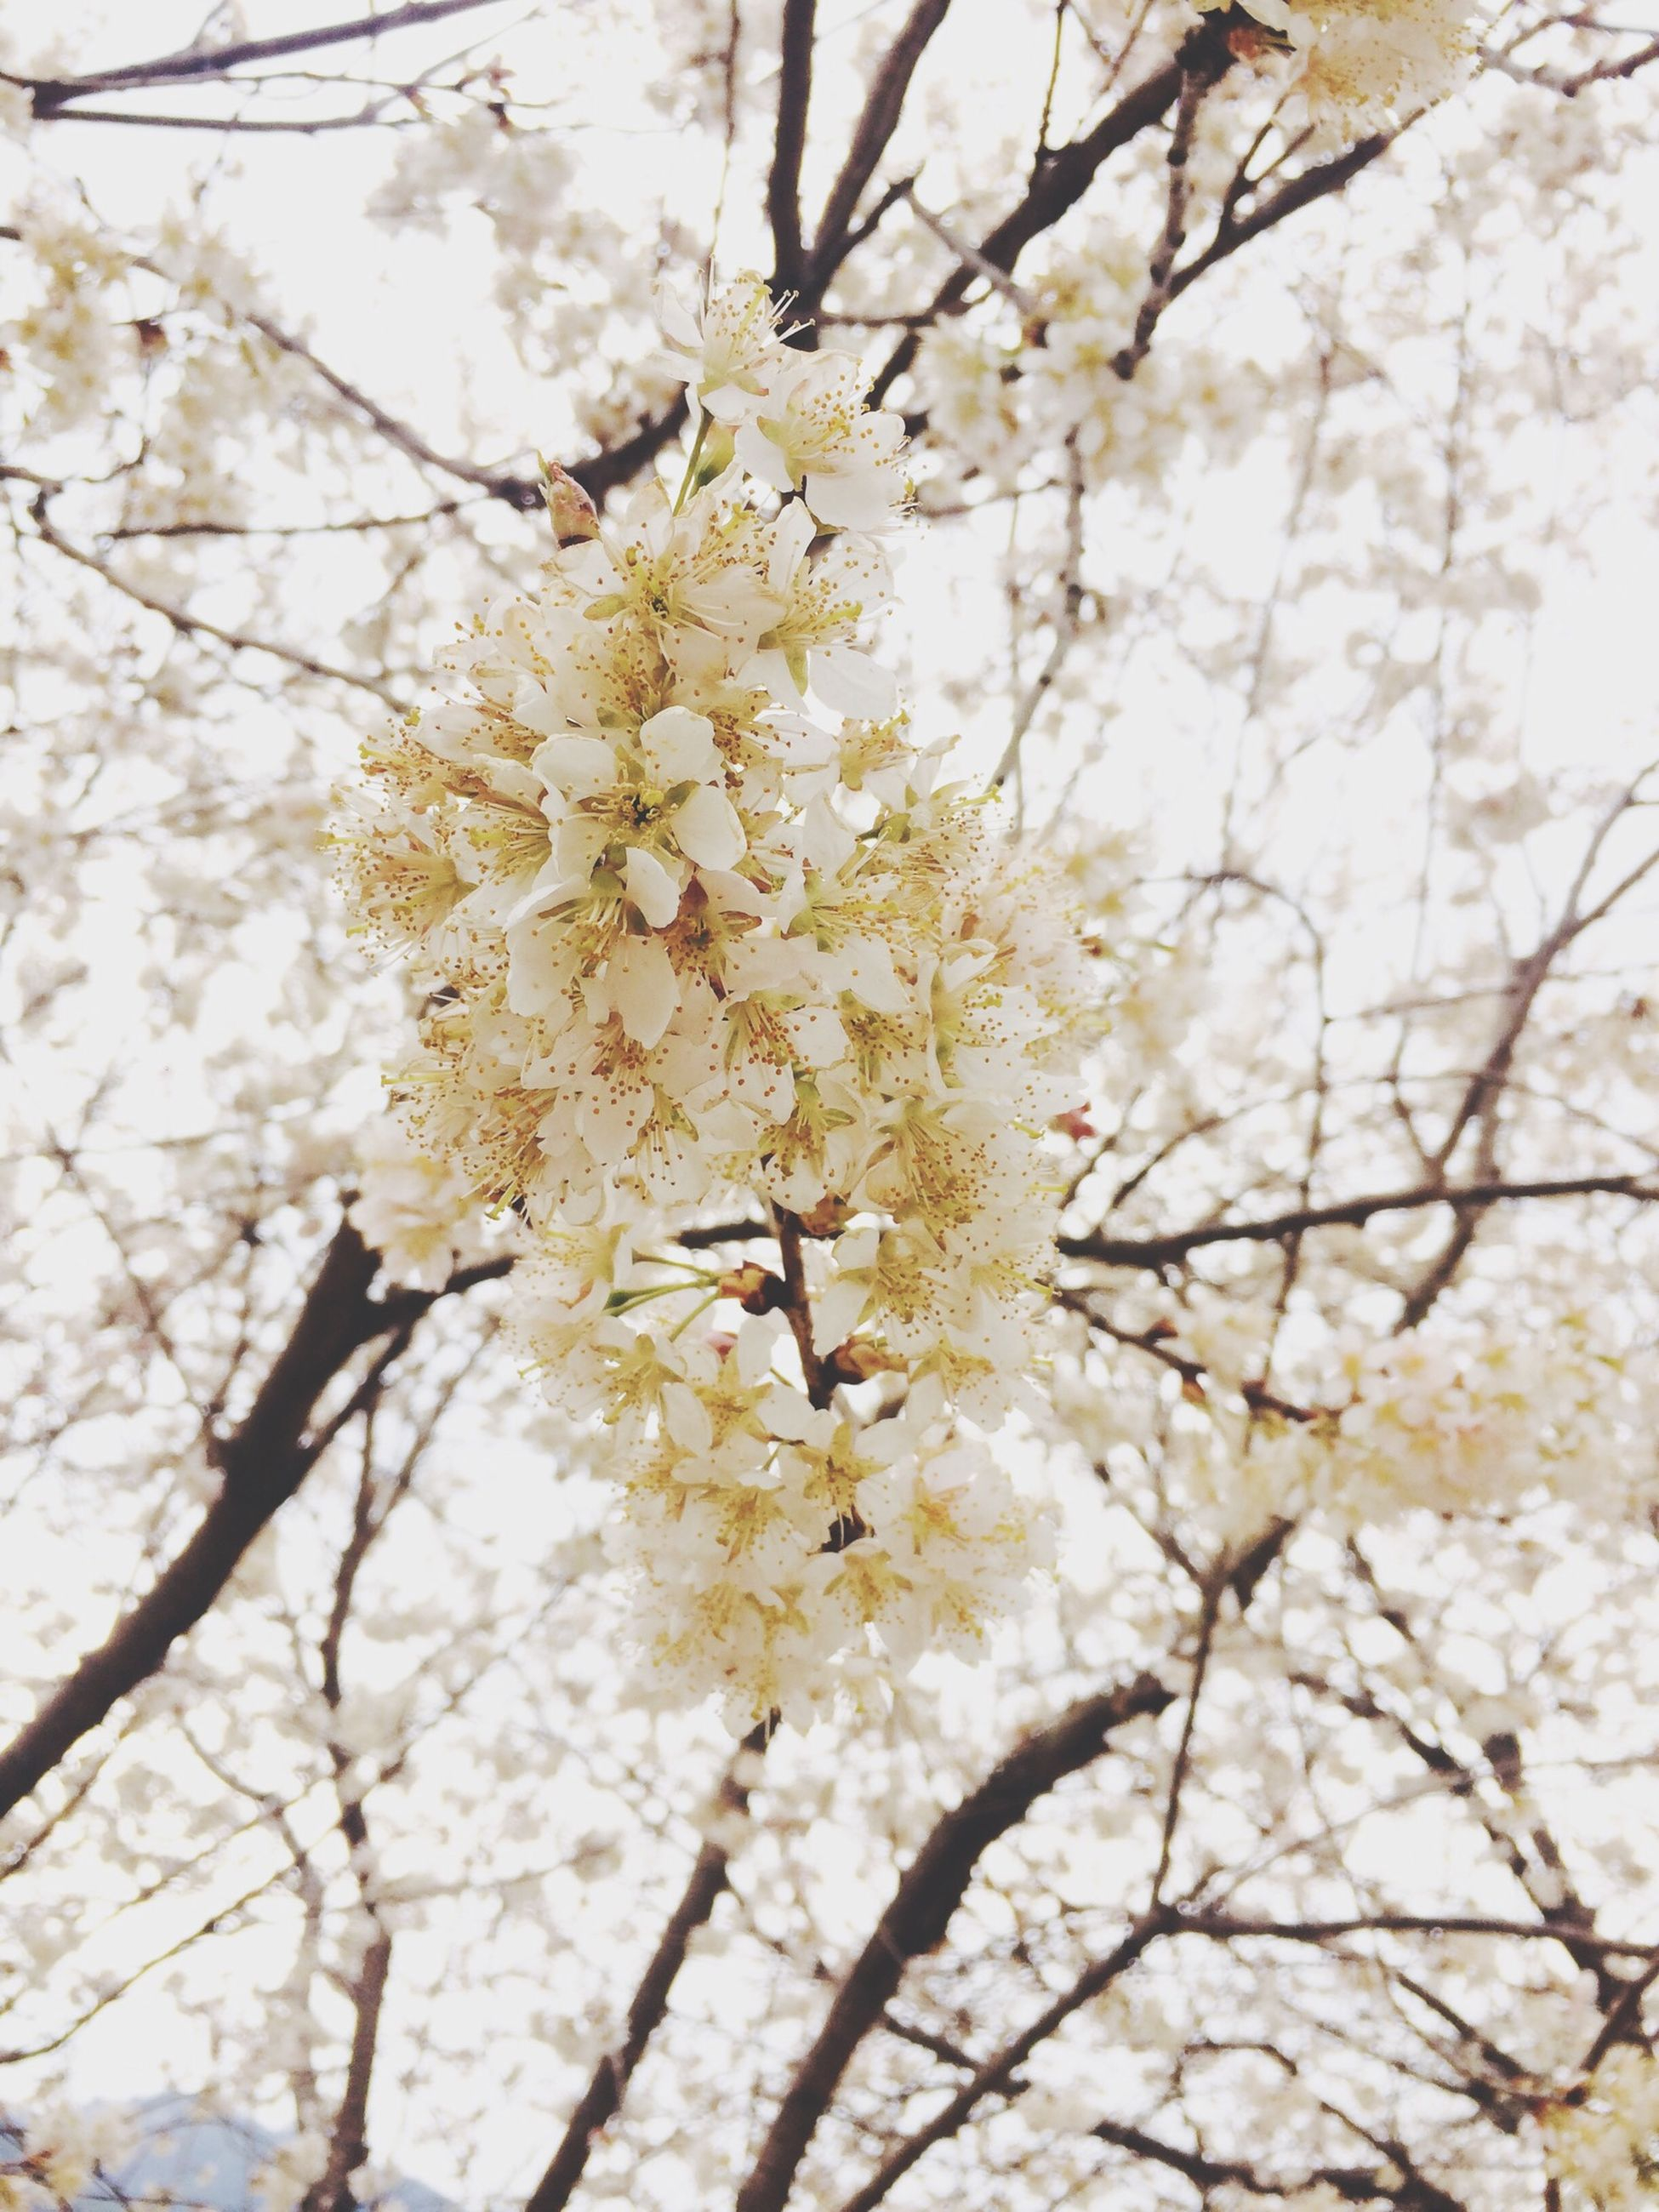 flower, branch, tree, growth, freshness, low angle view, cherry blossom, beauty in nature, fragility, blossom, nature, cherry tree, springtime, in bloom, blooming, petal, season, day, outdoors, twig